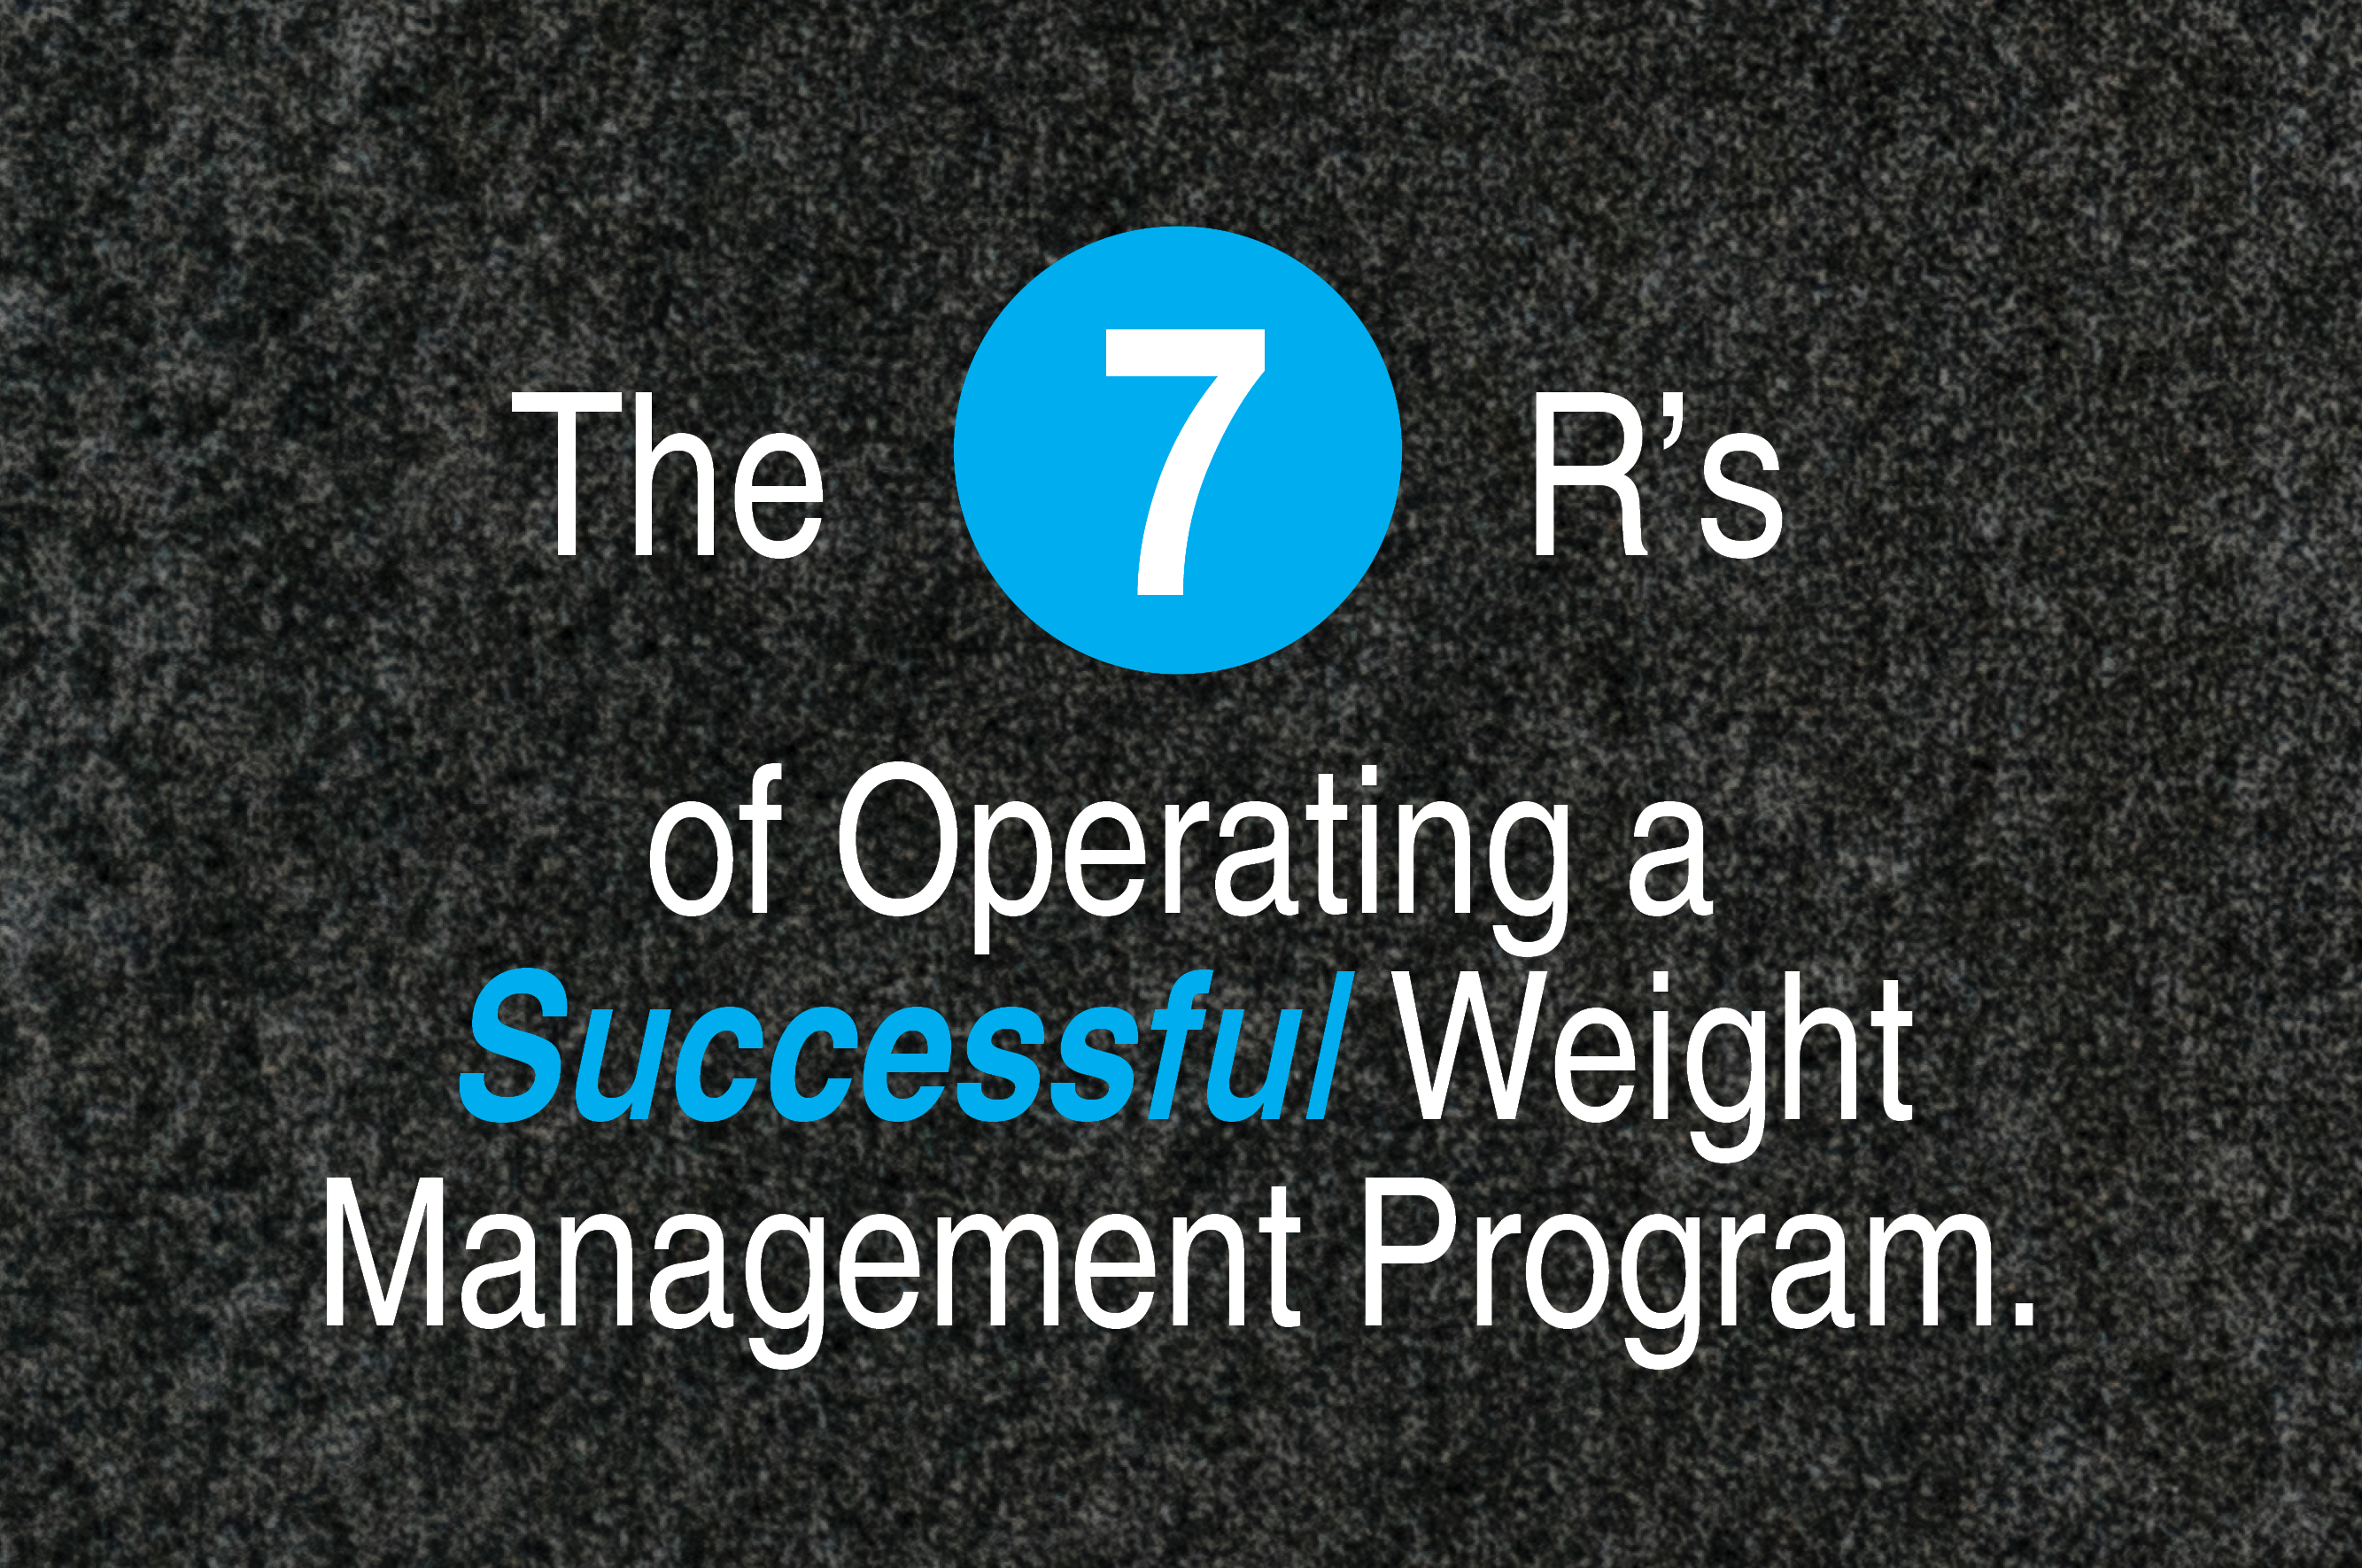 The 7 R's Of Operating A Successful Weight Management Program